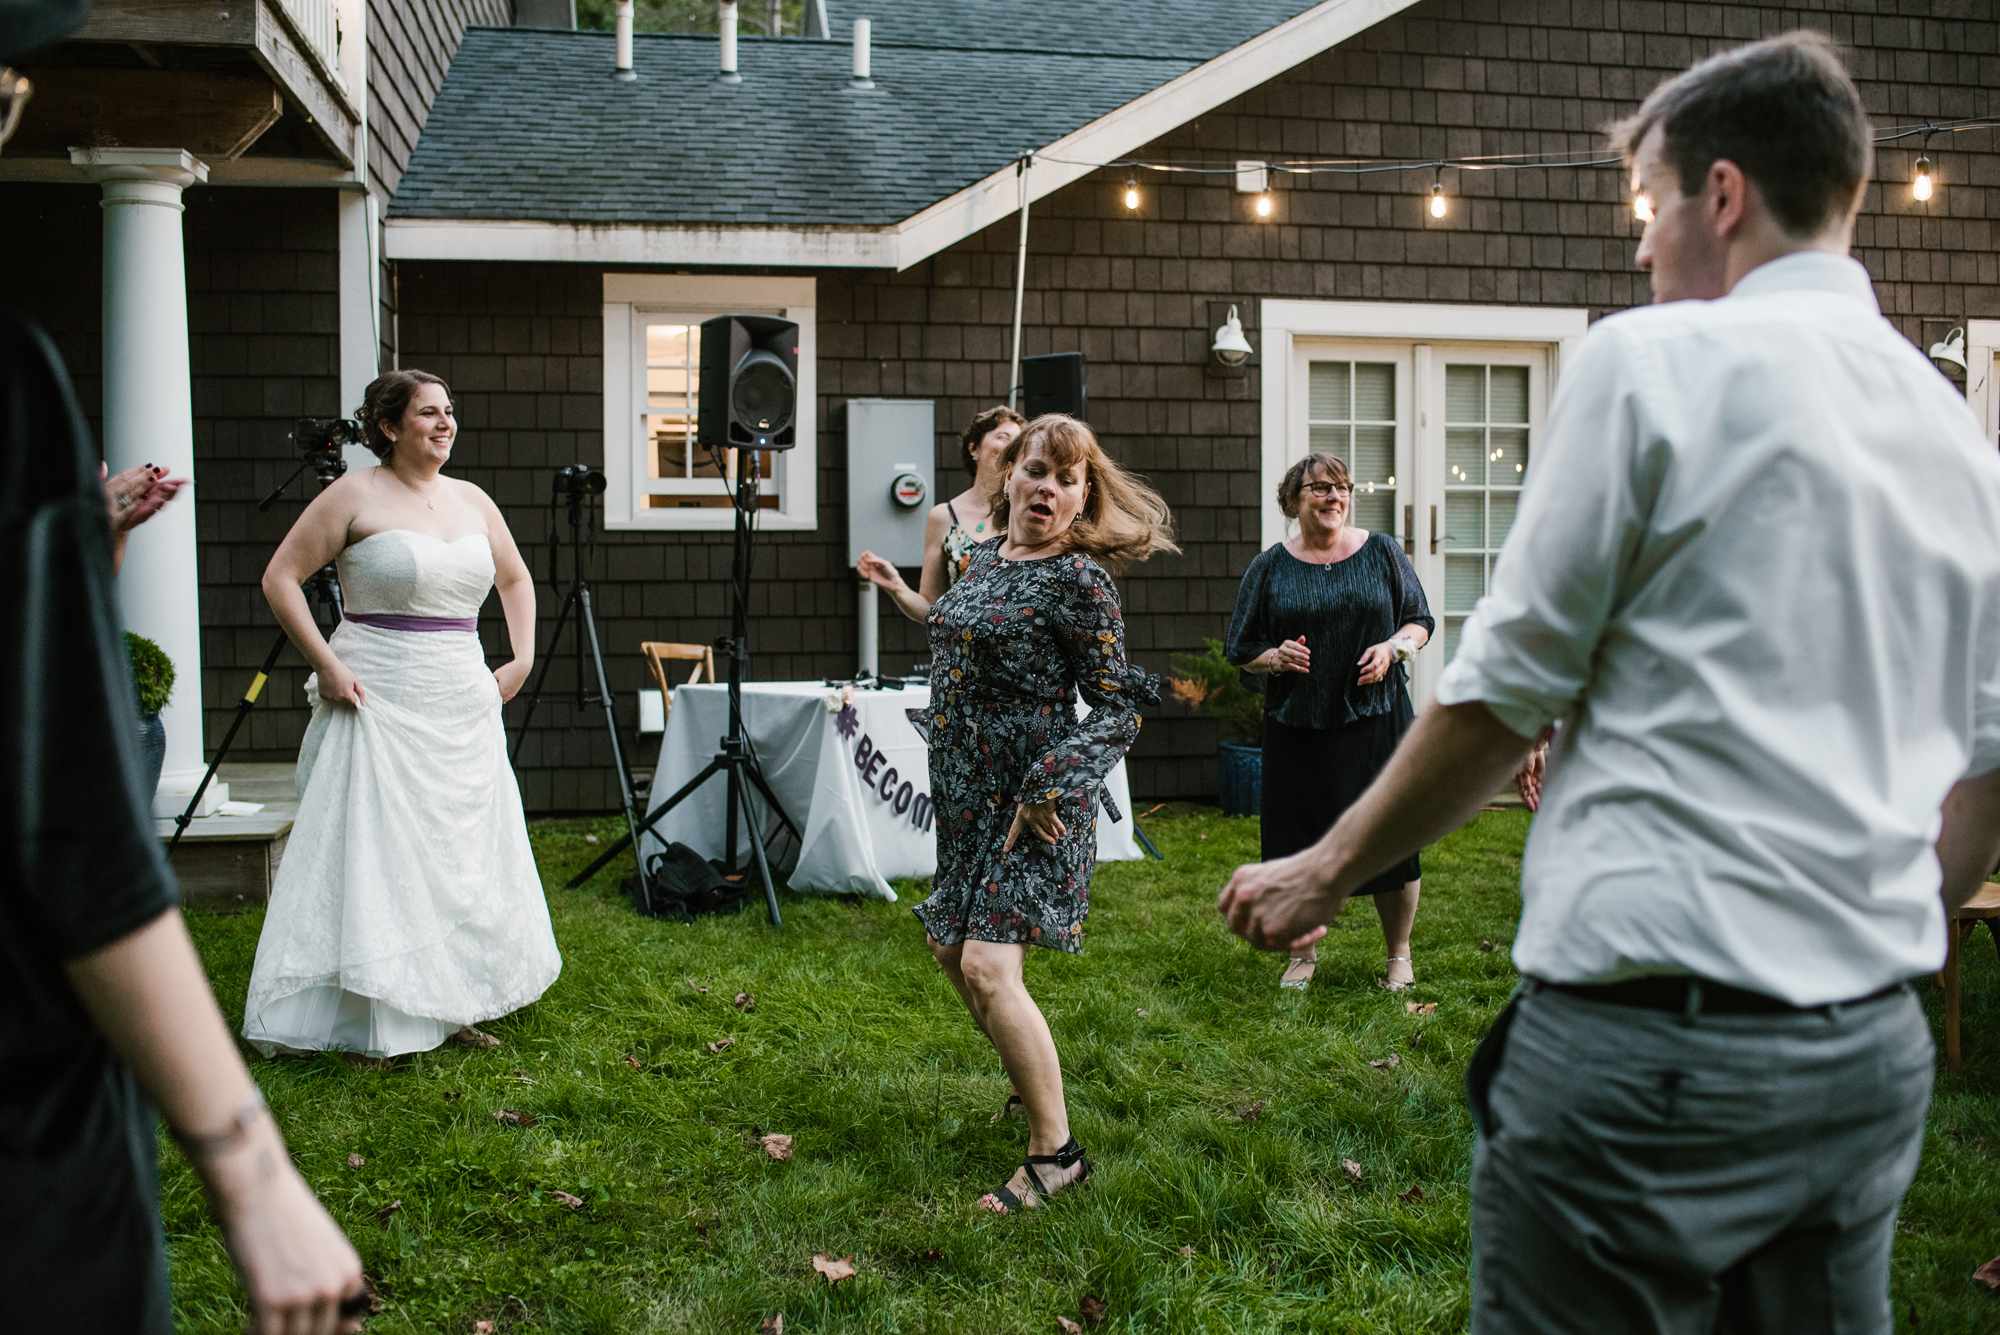 sawyer-michigan-backyard-wedding-dancing-pictures-sydney-marie (12).jpg